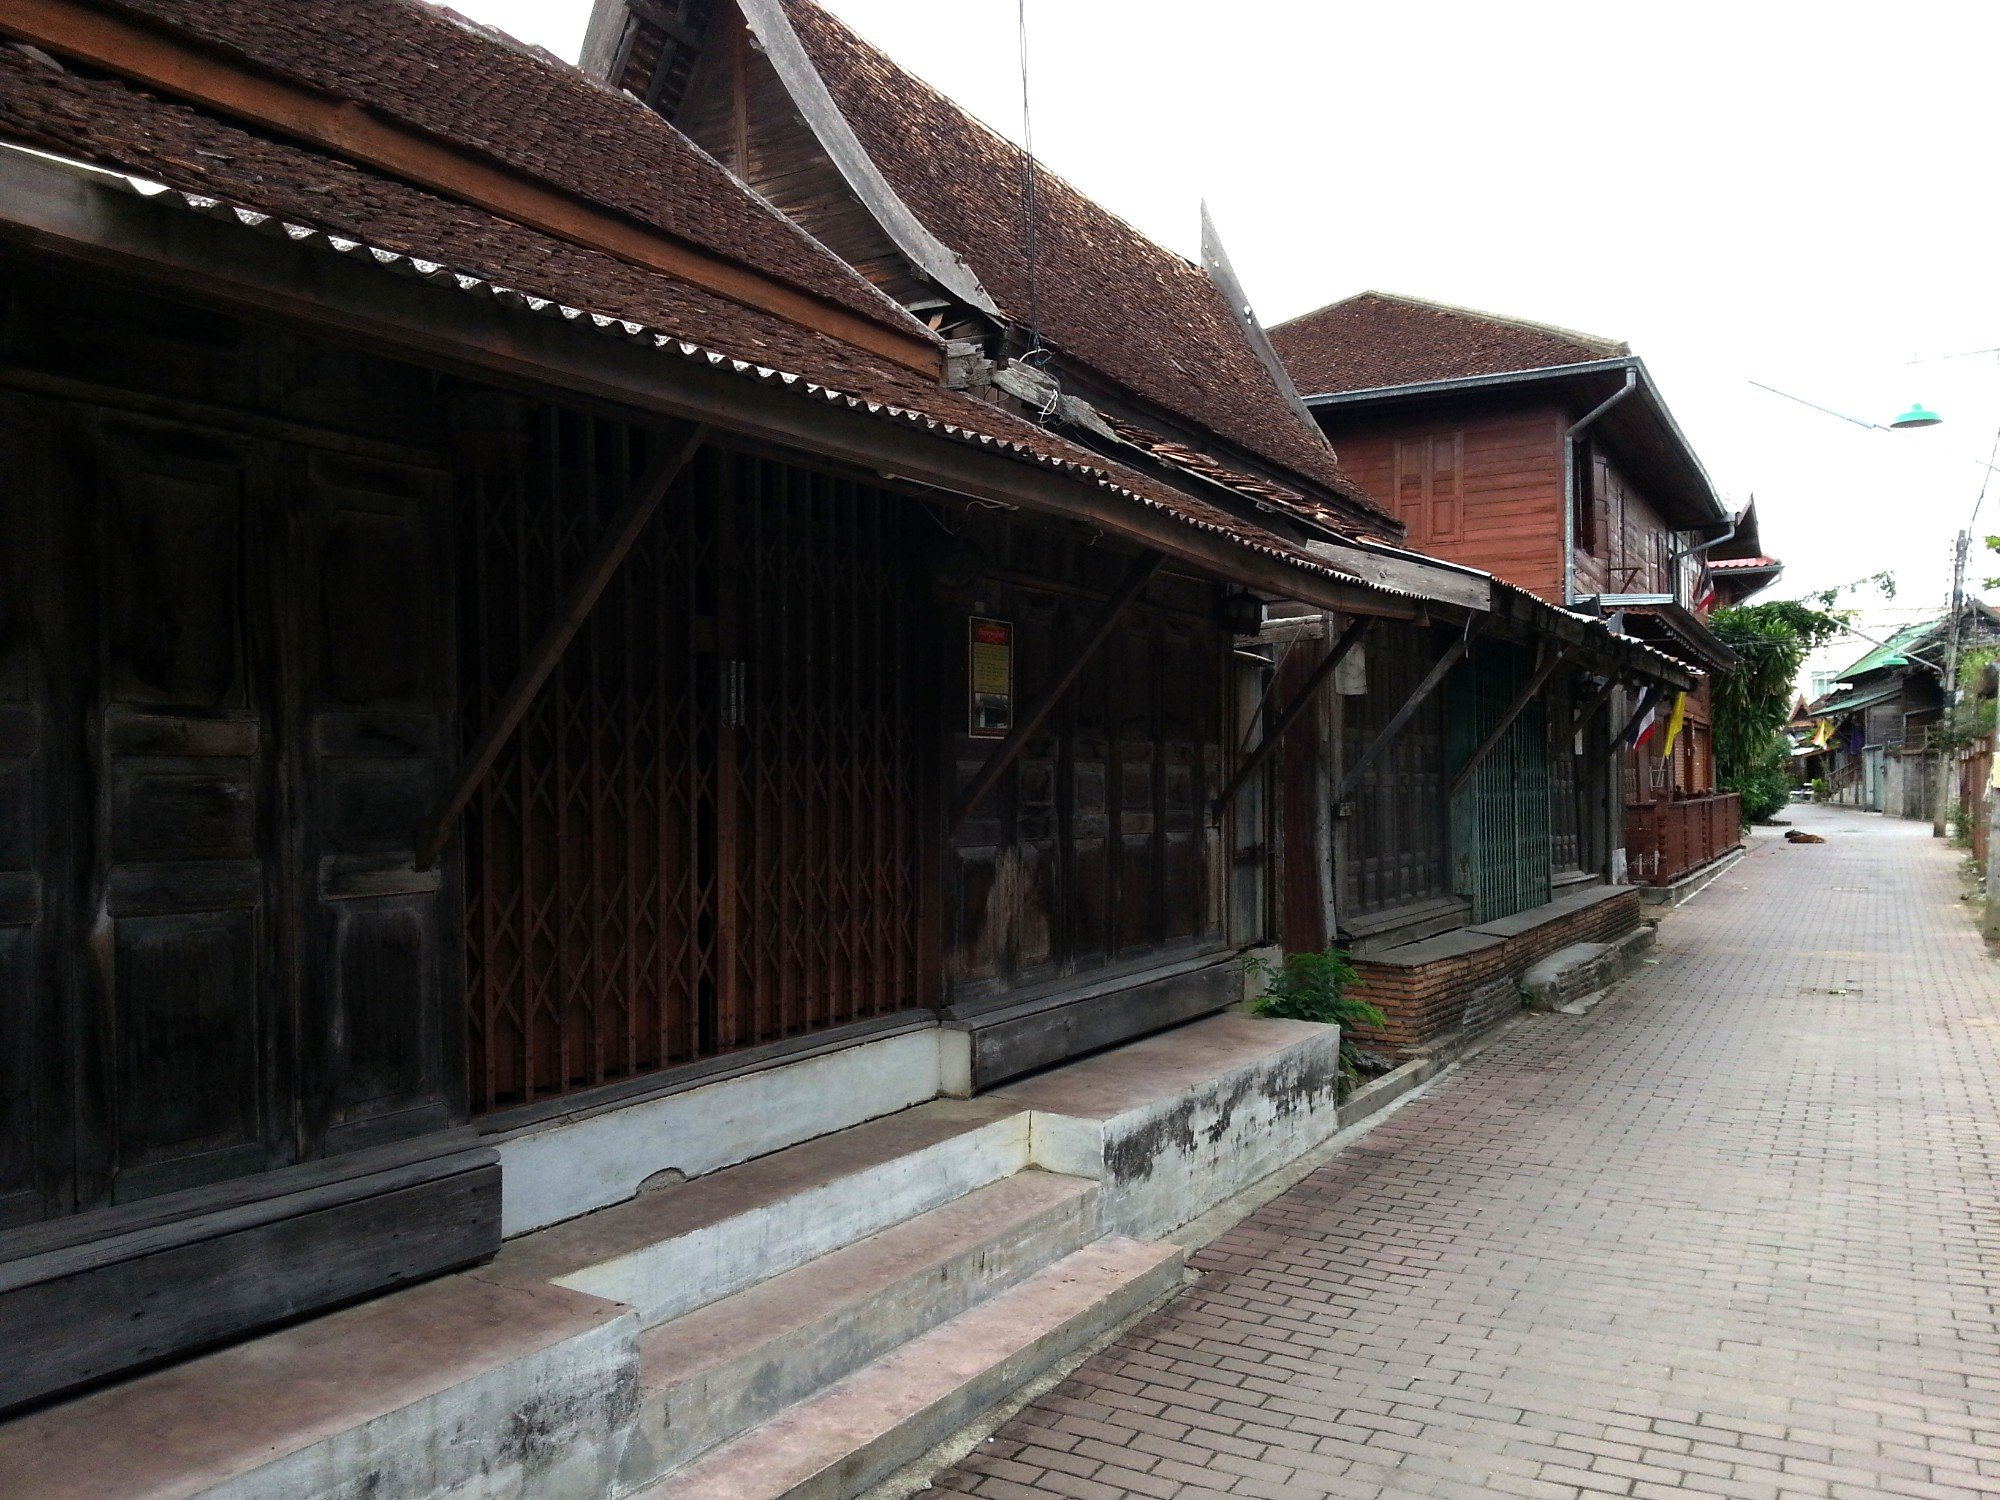 Shop houses with Thai style roofs on Ban Chin Alley